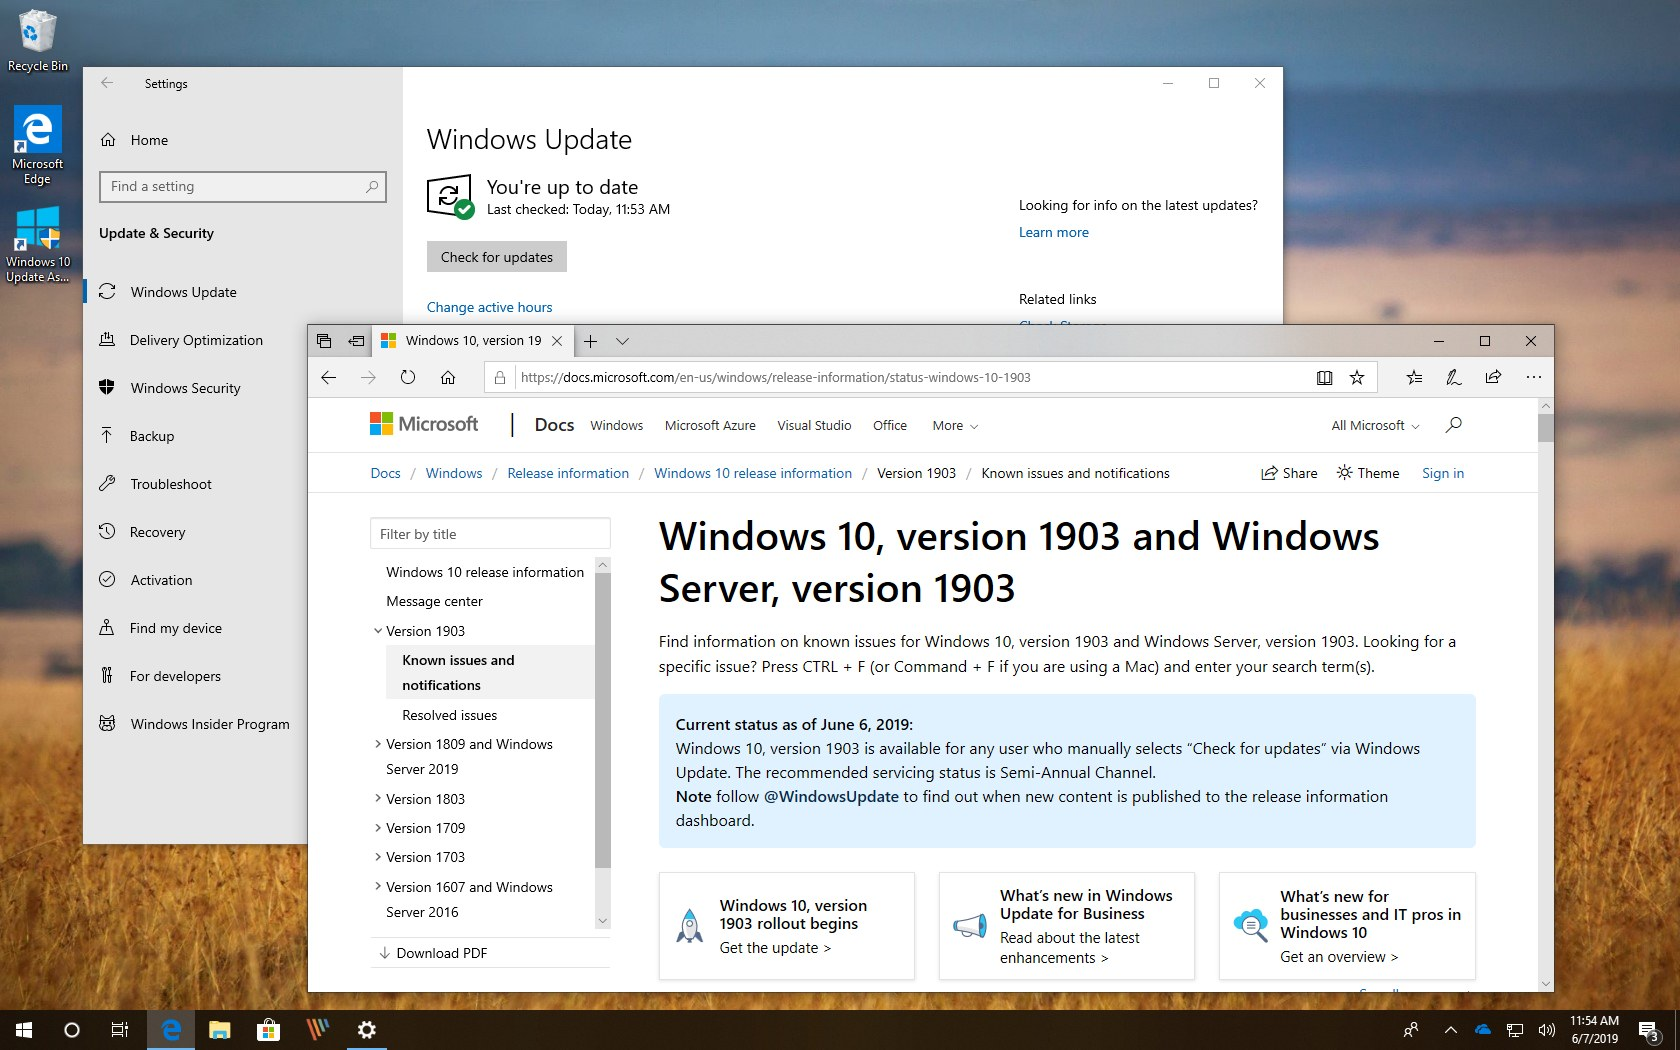 Windows 10 version 1903 fully available notice